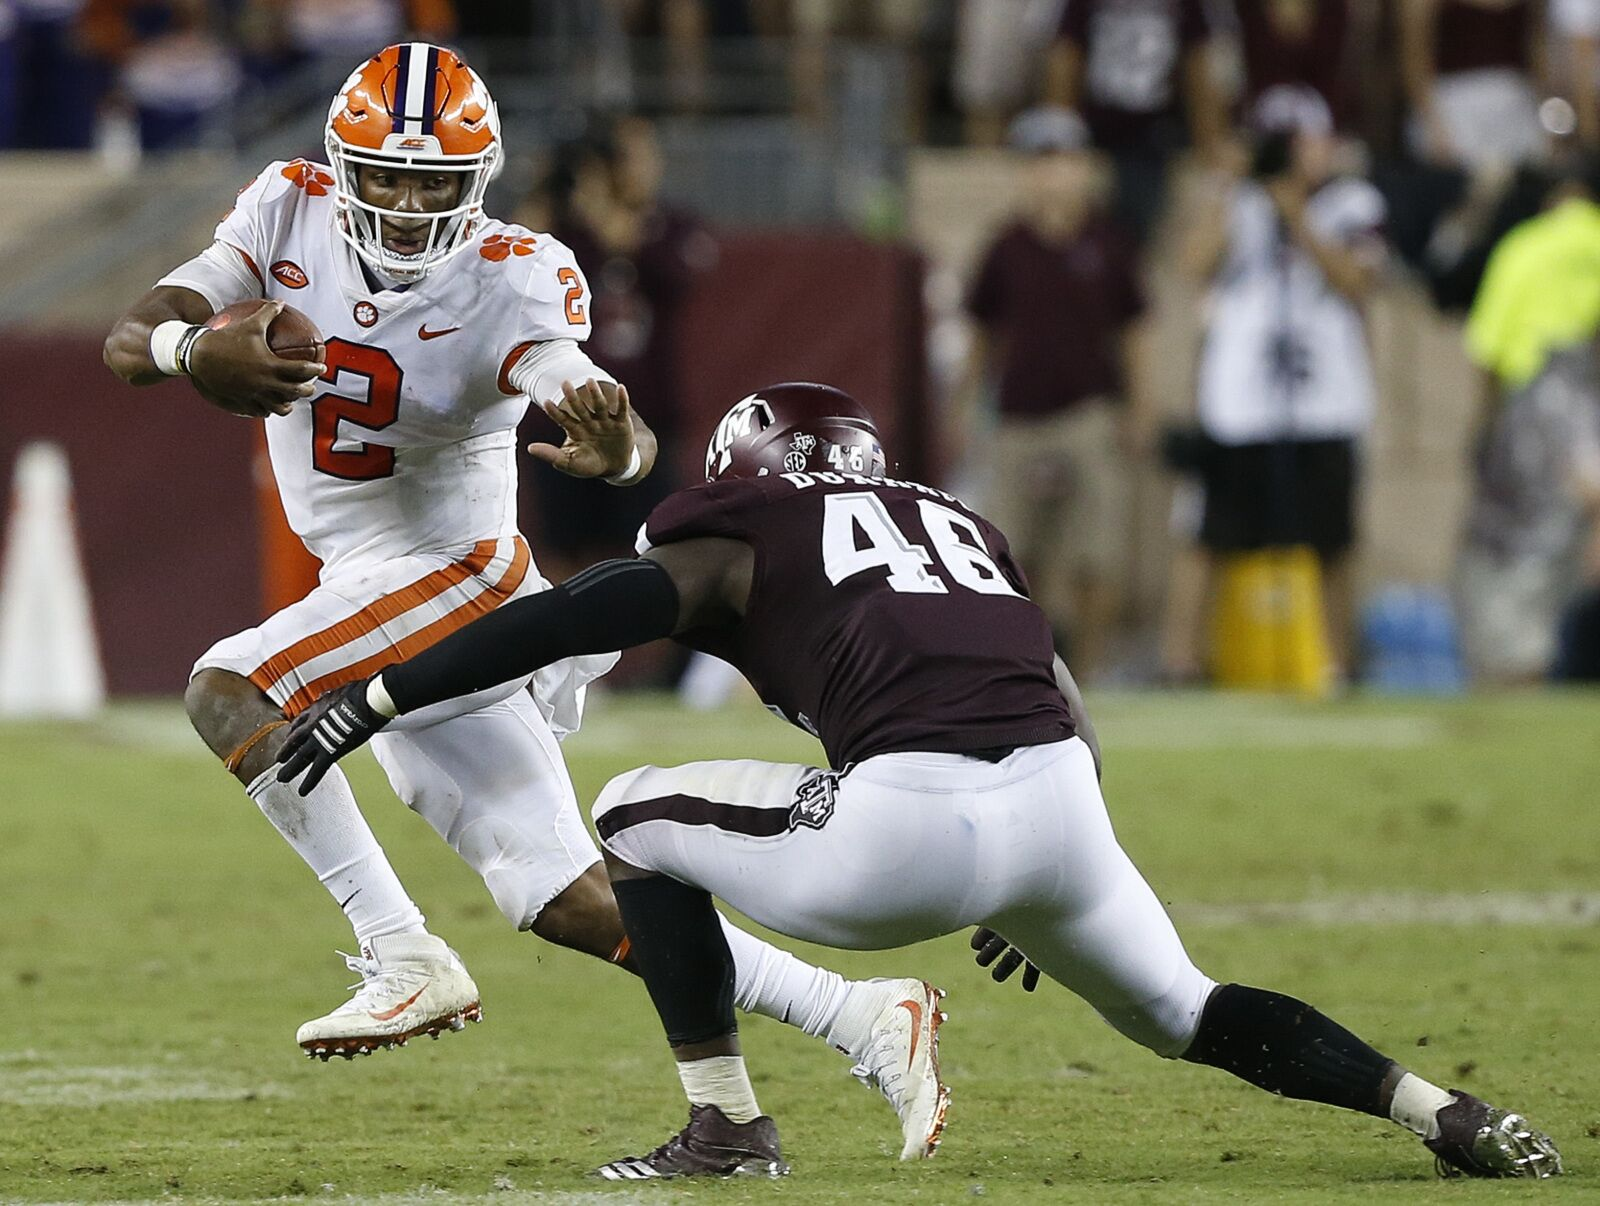 Texas A&M Football: Kelly Bryant sold on joining SEC after battle with Aggies